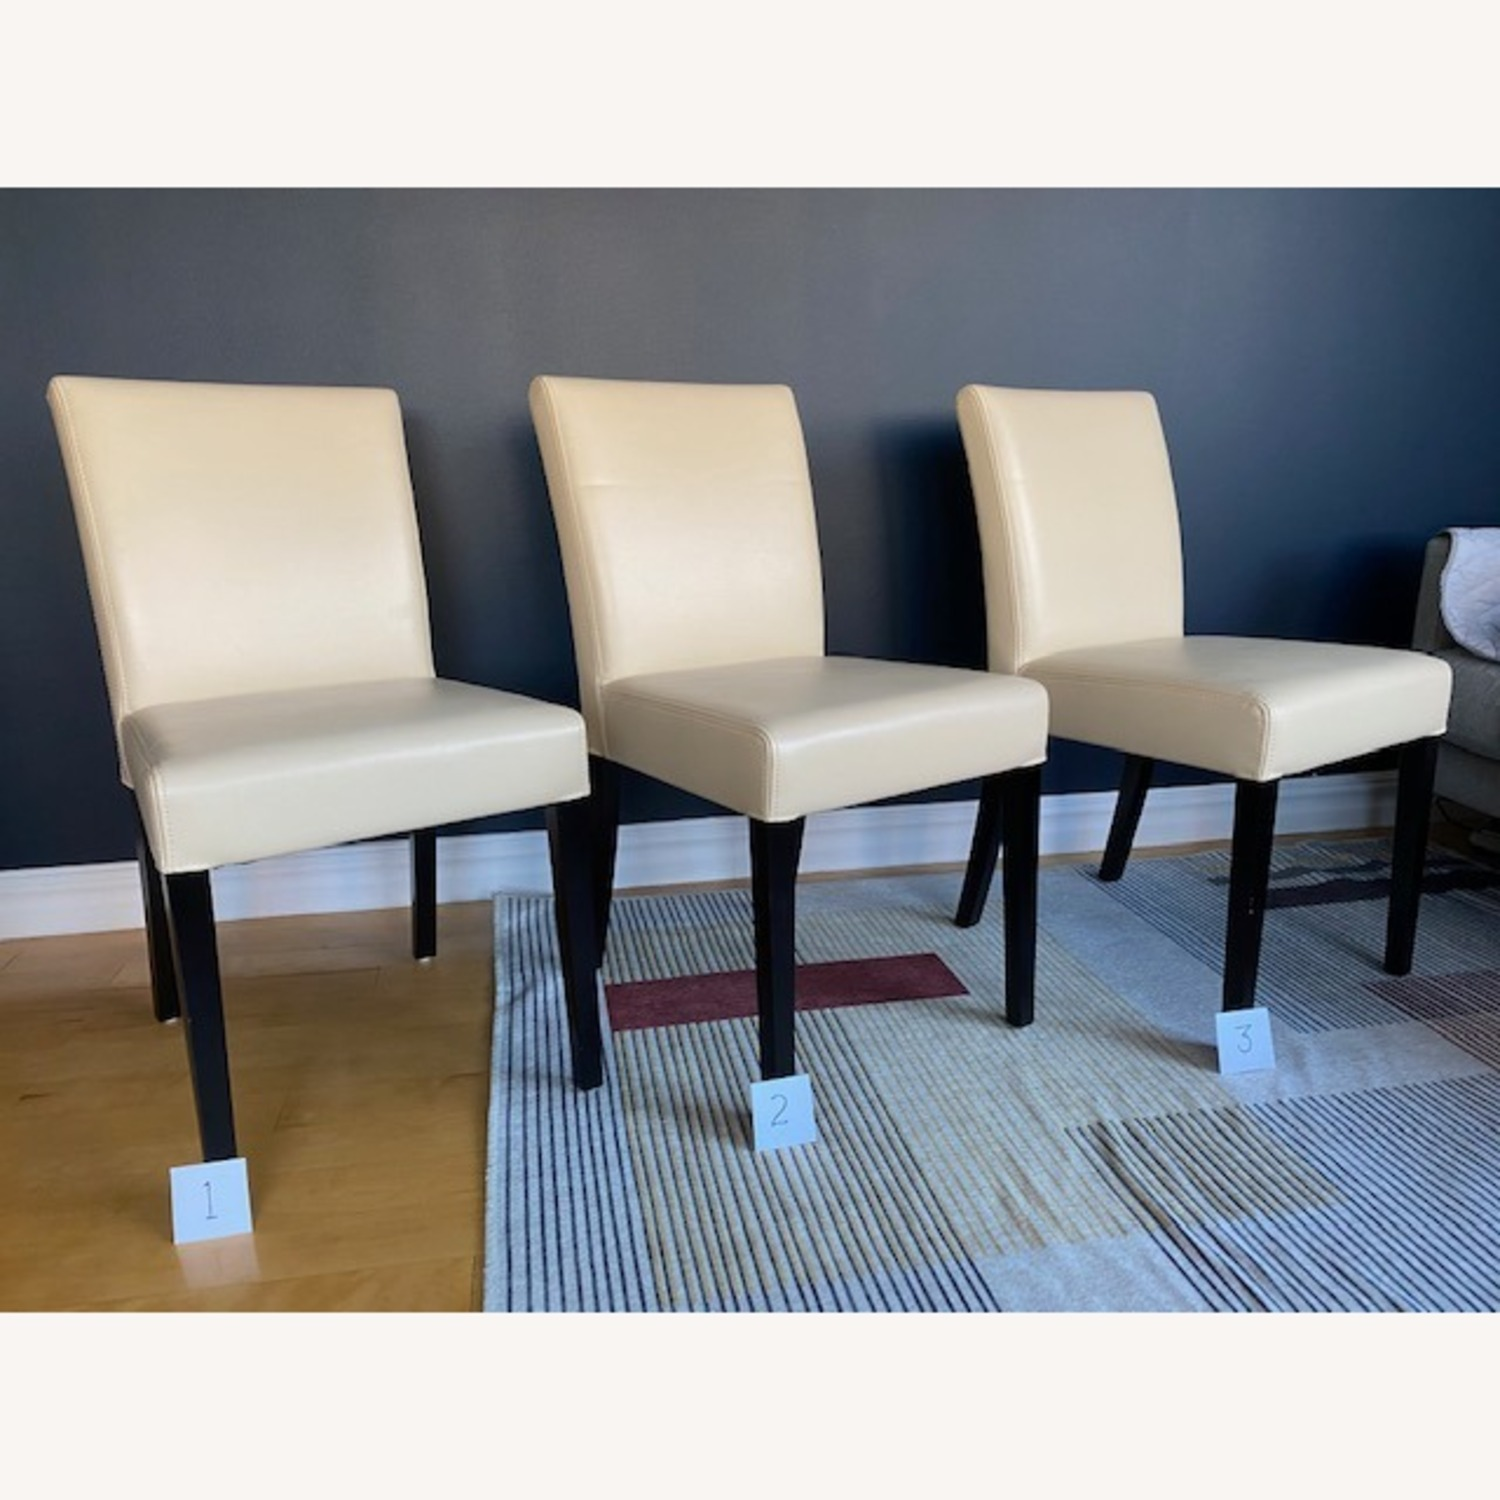 Crate & Barrel Lowe Ivory Leather Dining Chairs - image-8